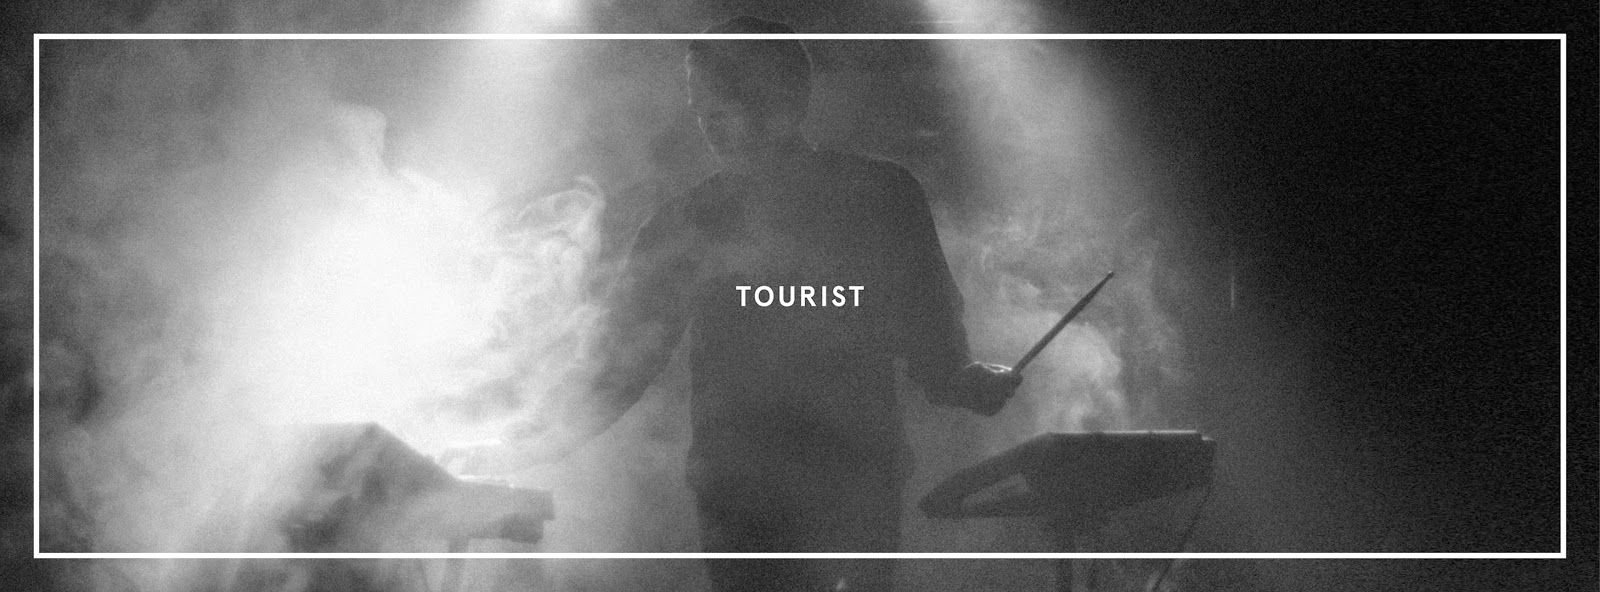 DYLTS - Tourist - Wait